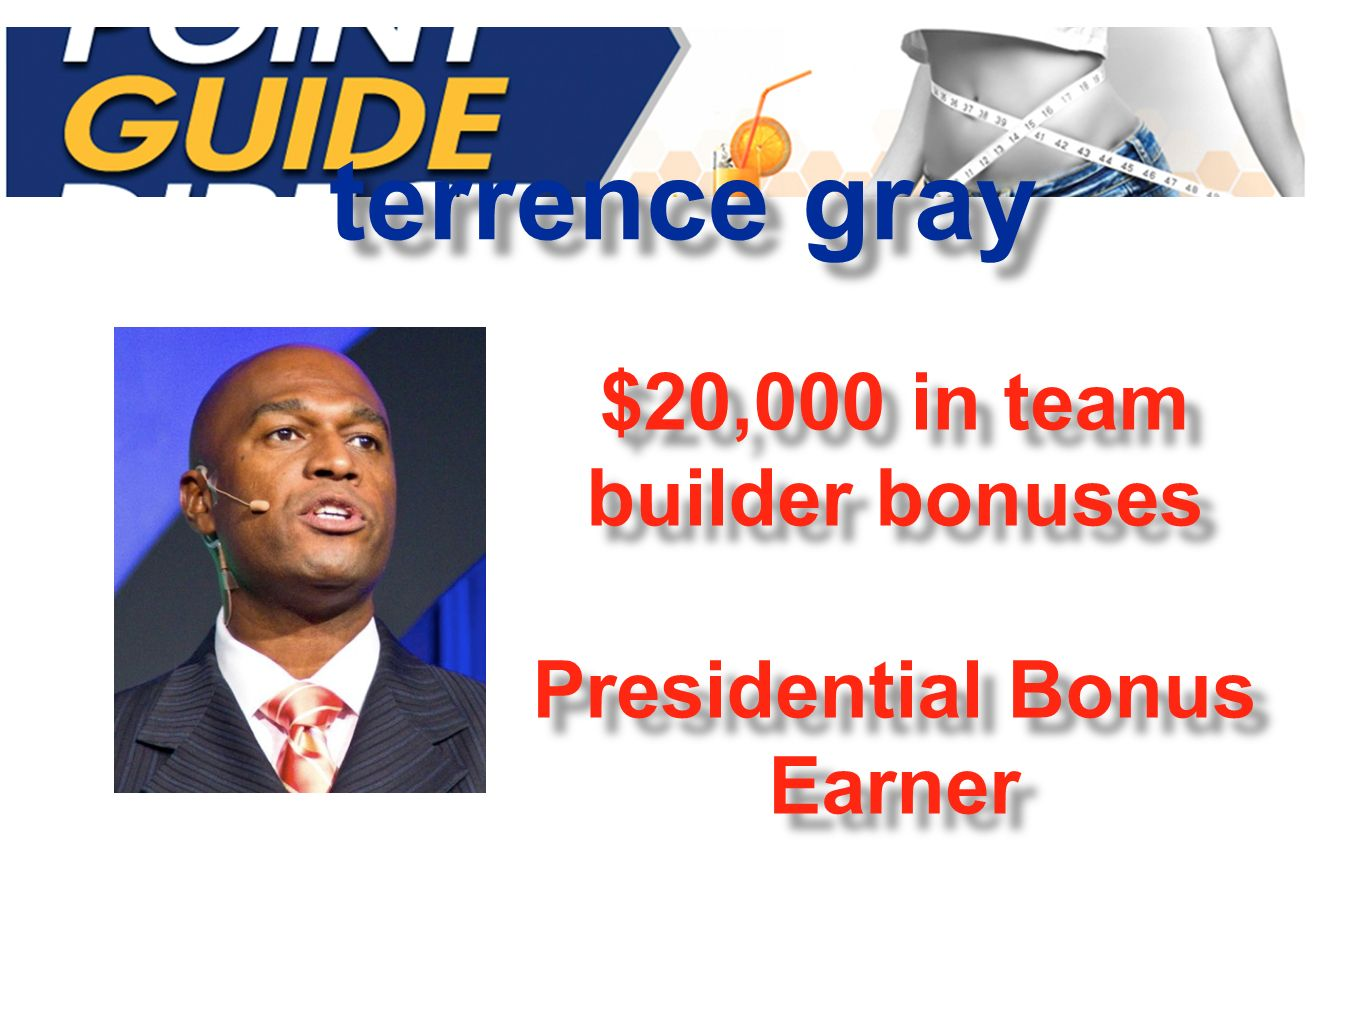 terrence gray $20,000 in team builder bonuses Presidential Bonus Earner $20,000 in team builder bonuses Presidential Bonus Earner